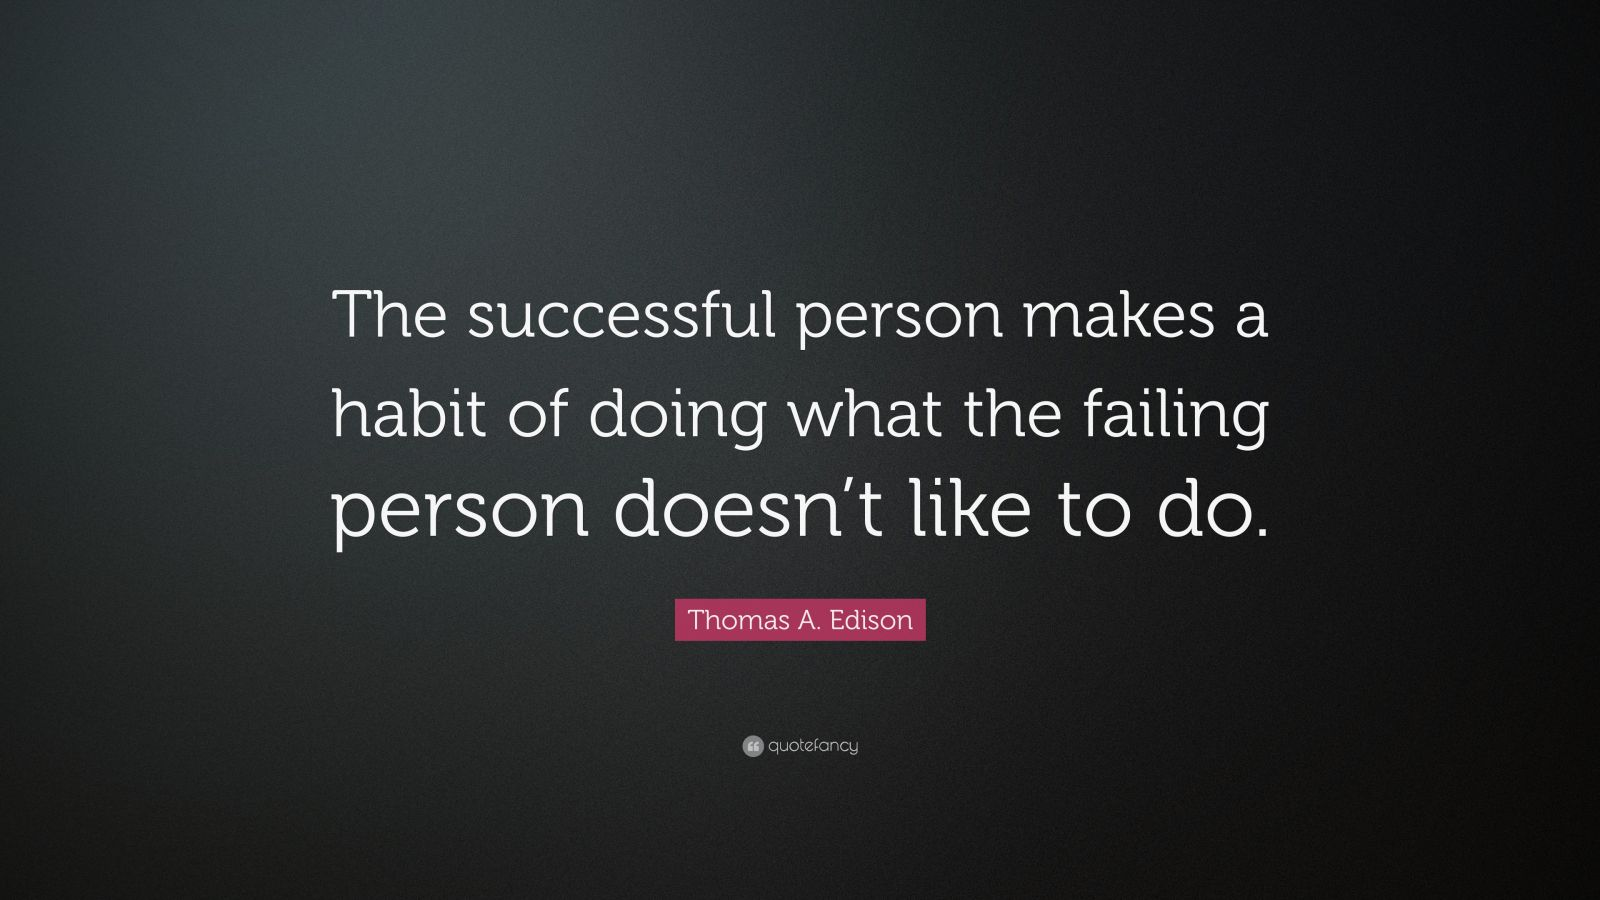 """Thomas A. Edison Quote: """"The successful person makes a habit of doing what the failing person doesn't like to do."""""""